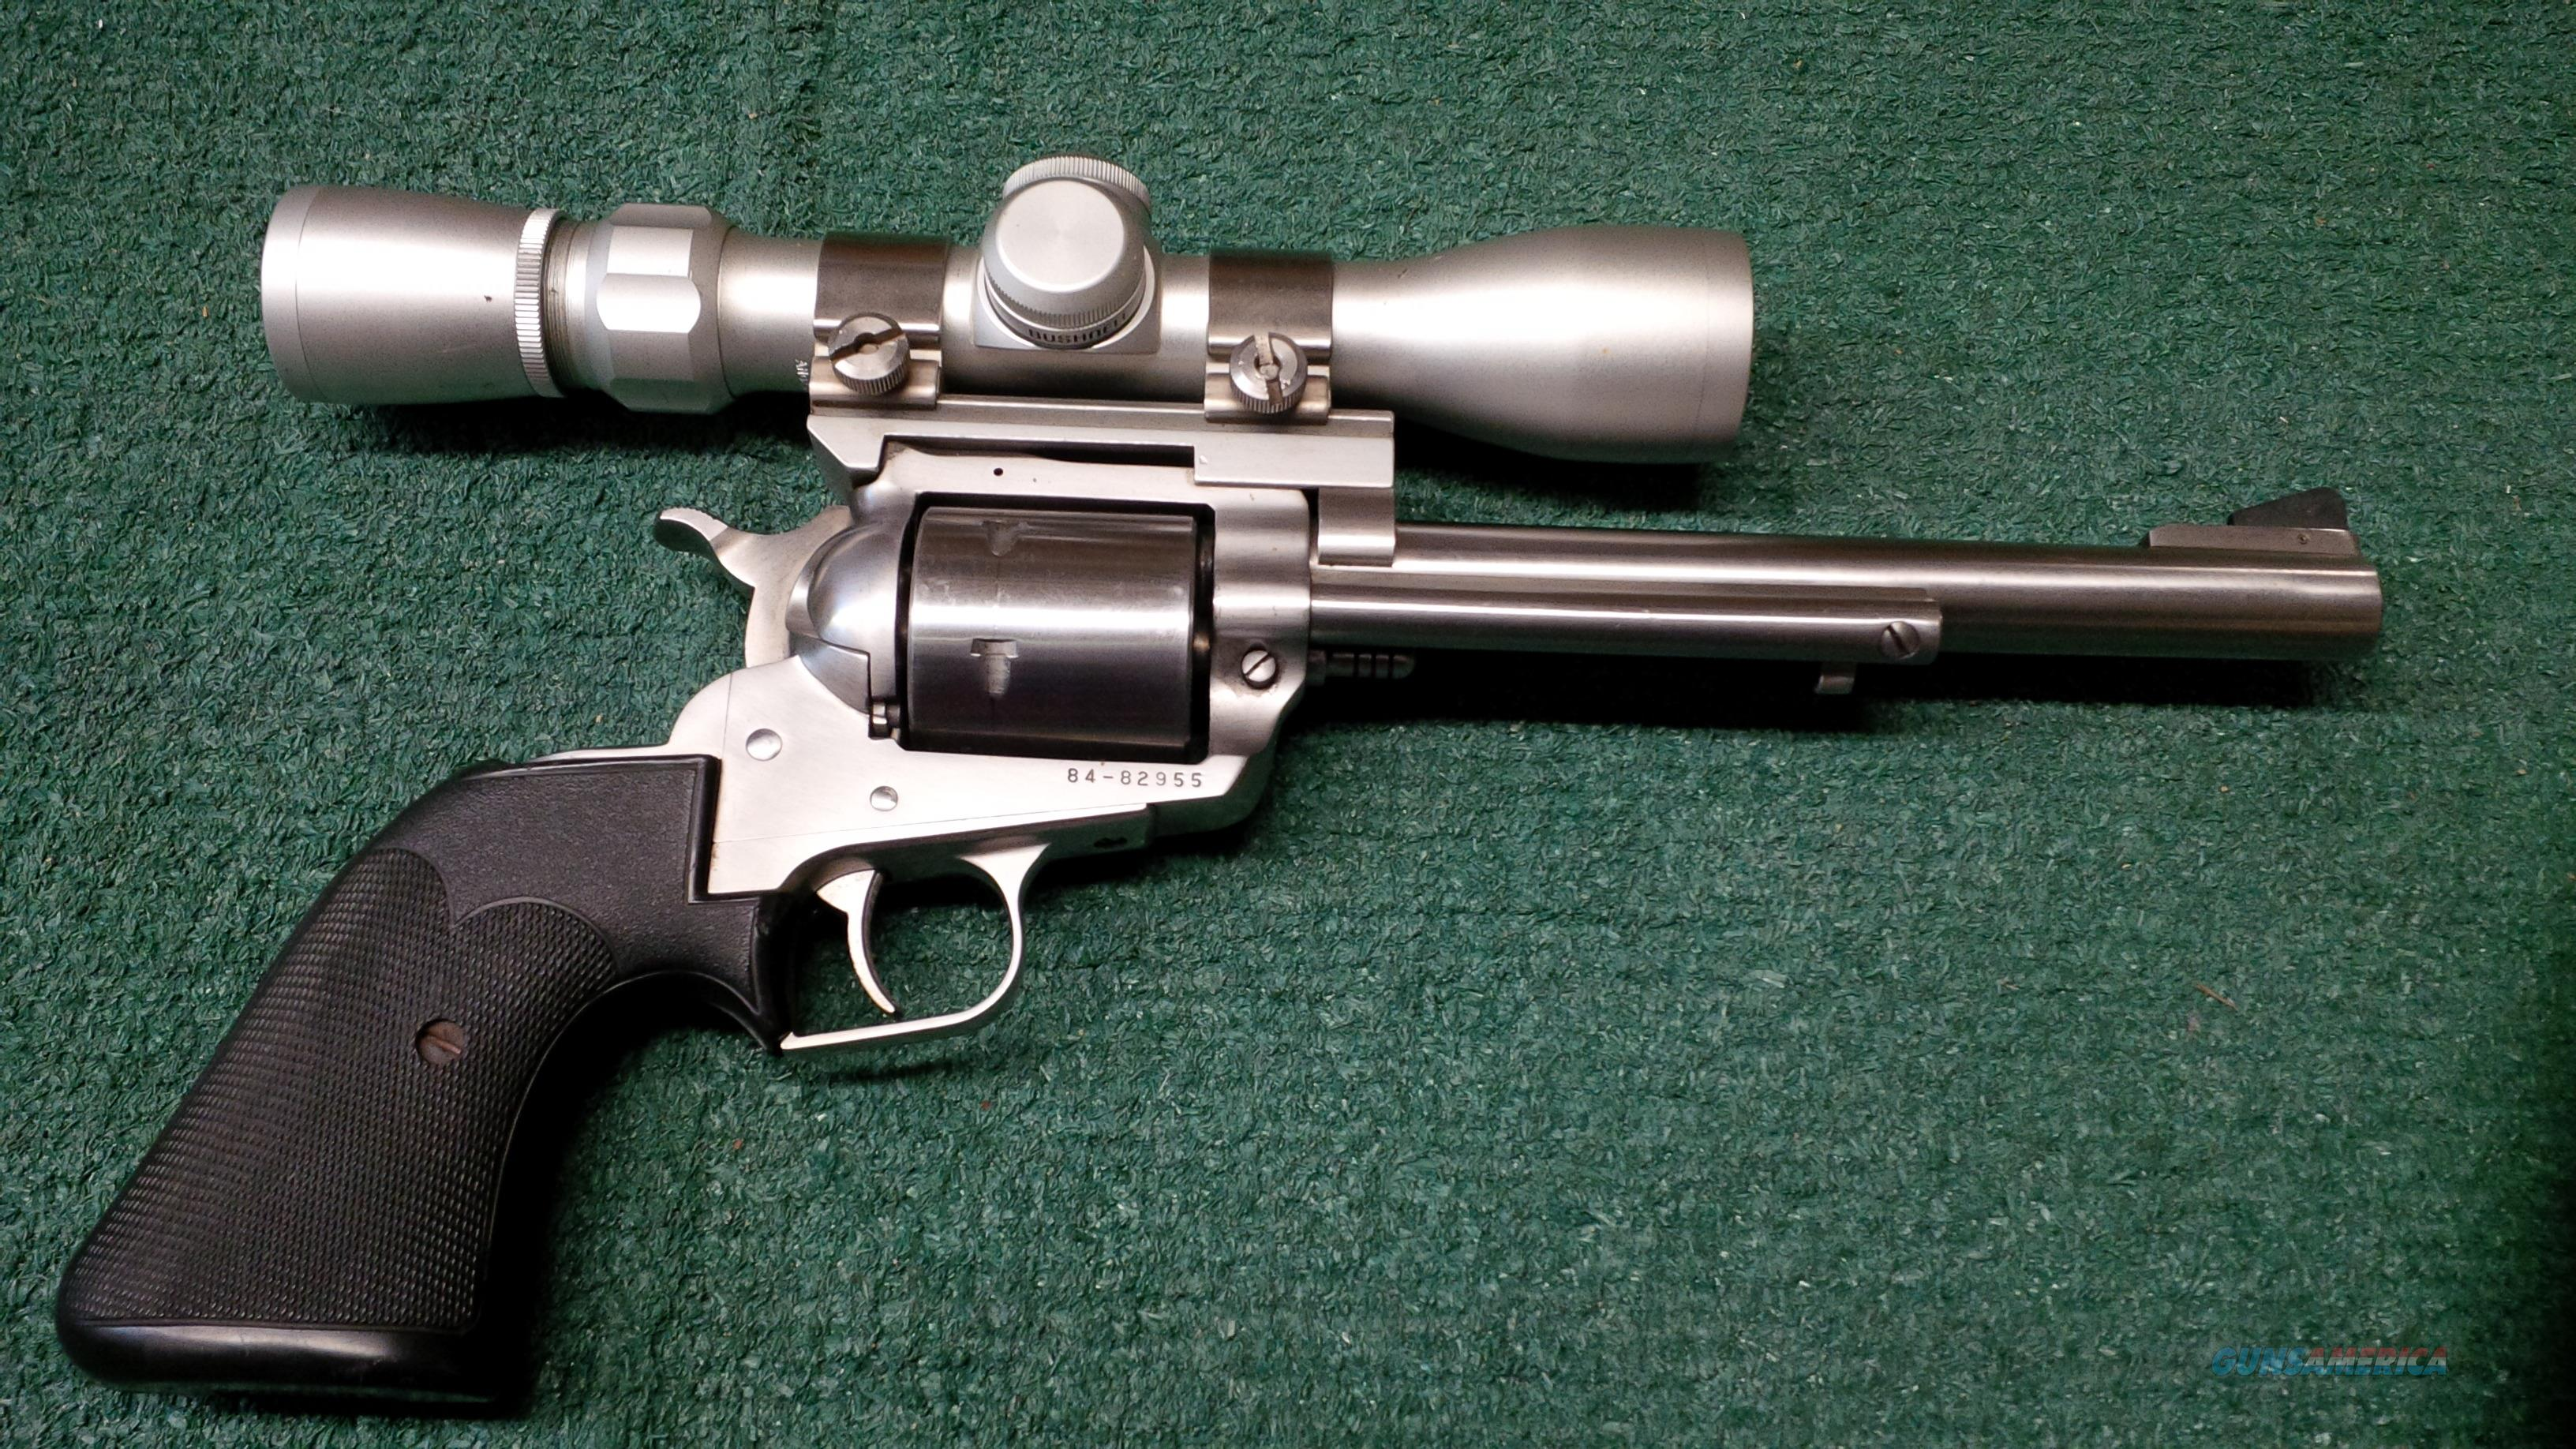 Ruger New Model Super Blackhawk .44 Magnum 7.5 Inch Barrel With Bushnell 2x6   Guns > Pistols > Ruger Single Action Revolvers > Blackhawk Type